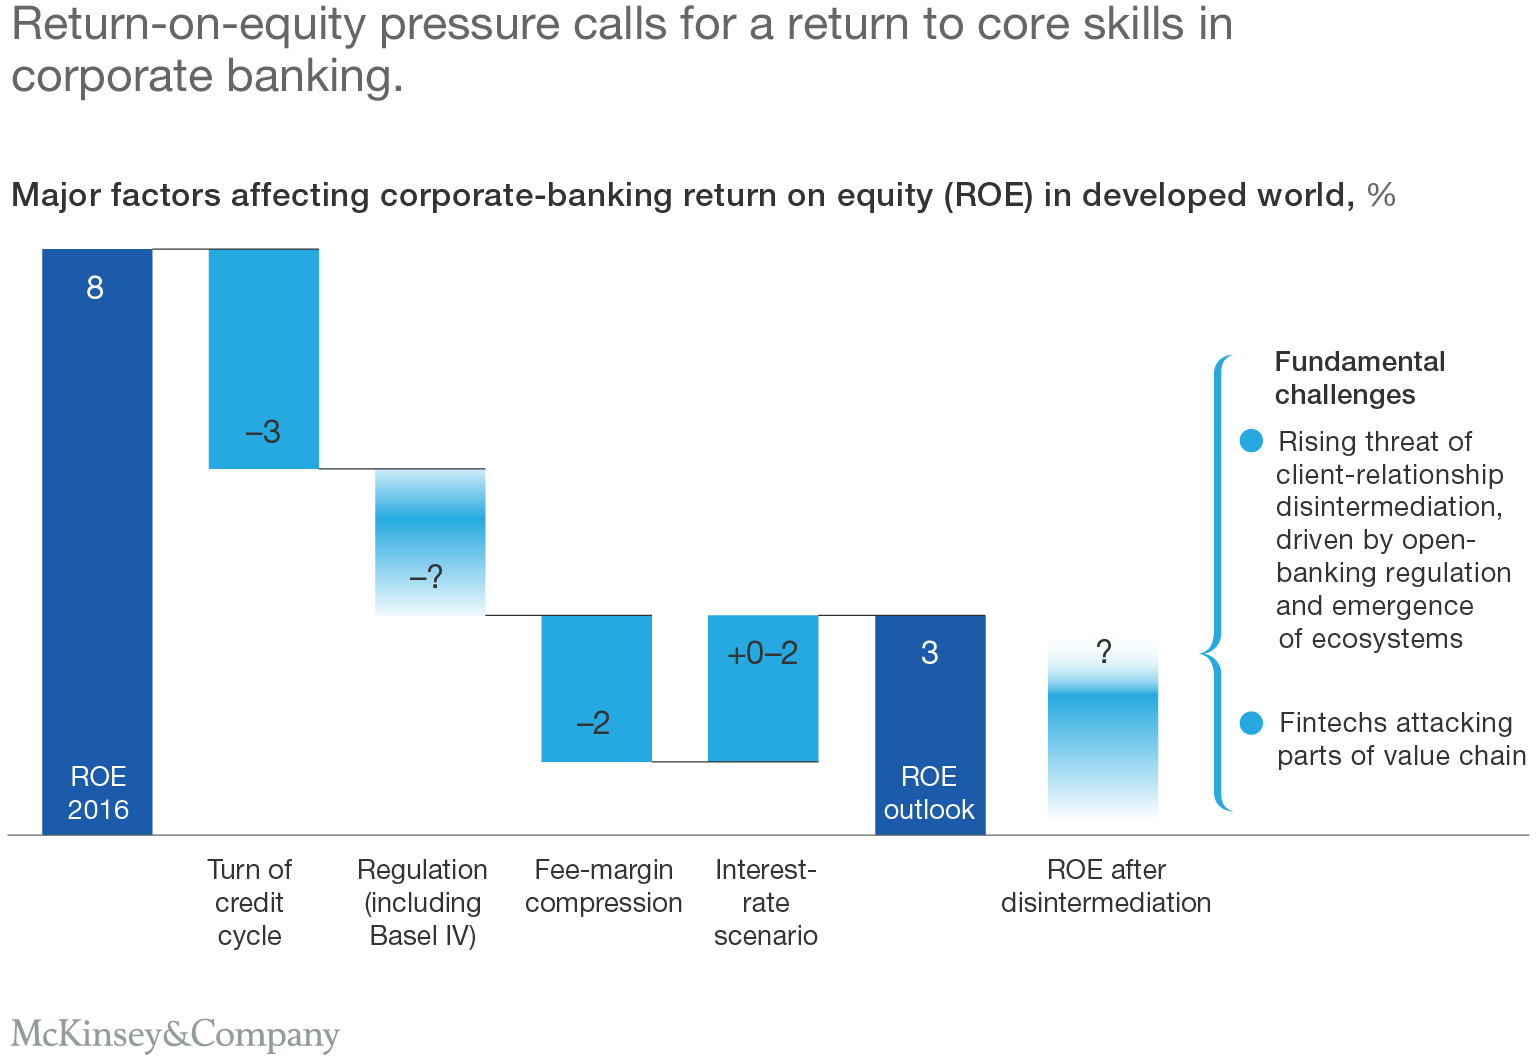 Return-on-equity pressure calls for a return to core skills in corporate banking.